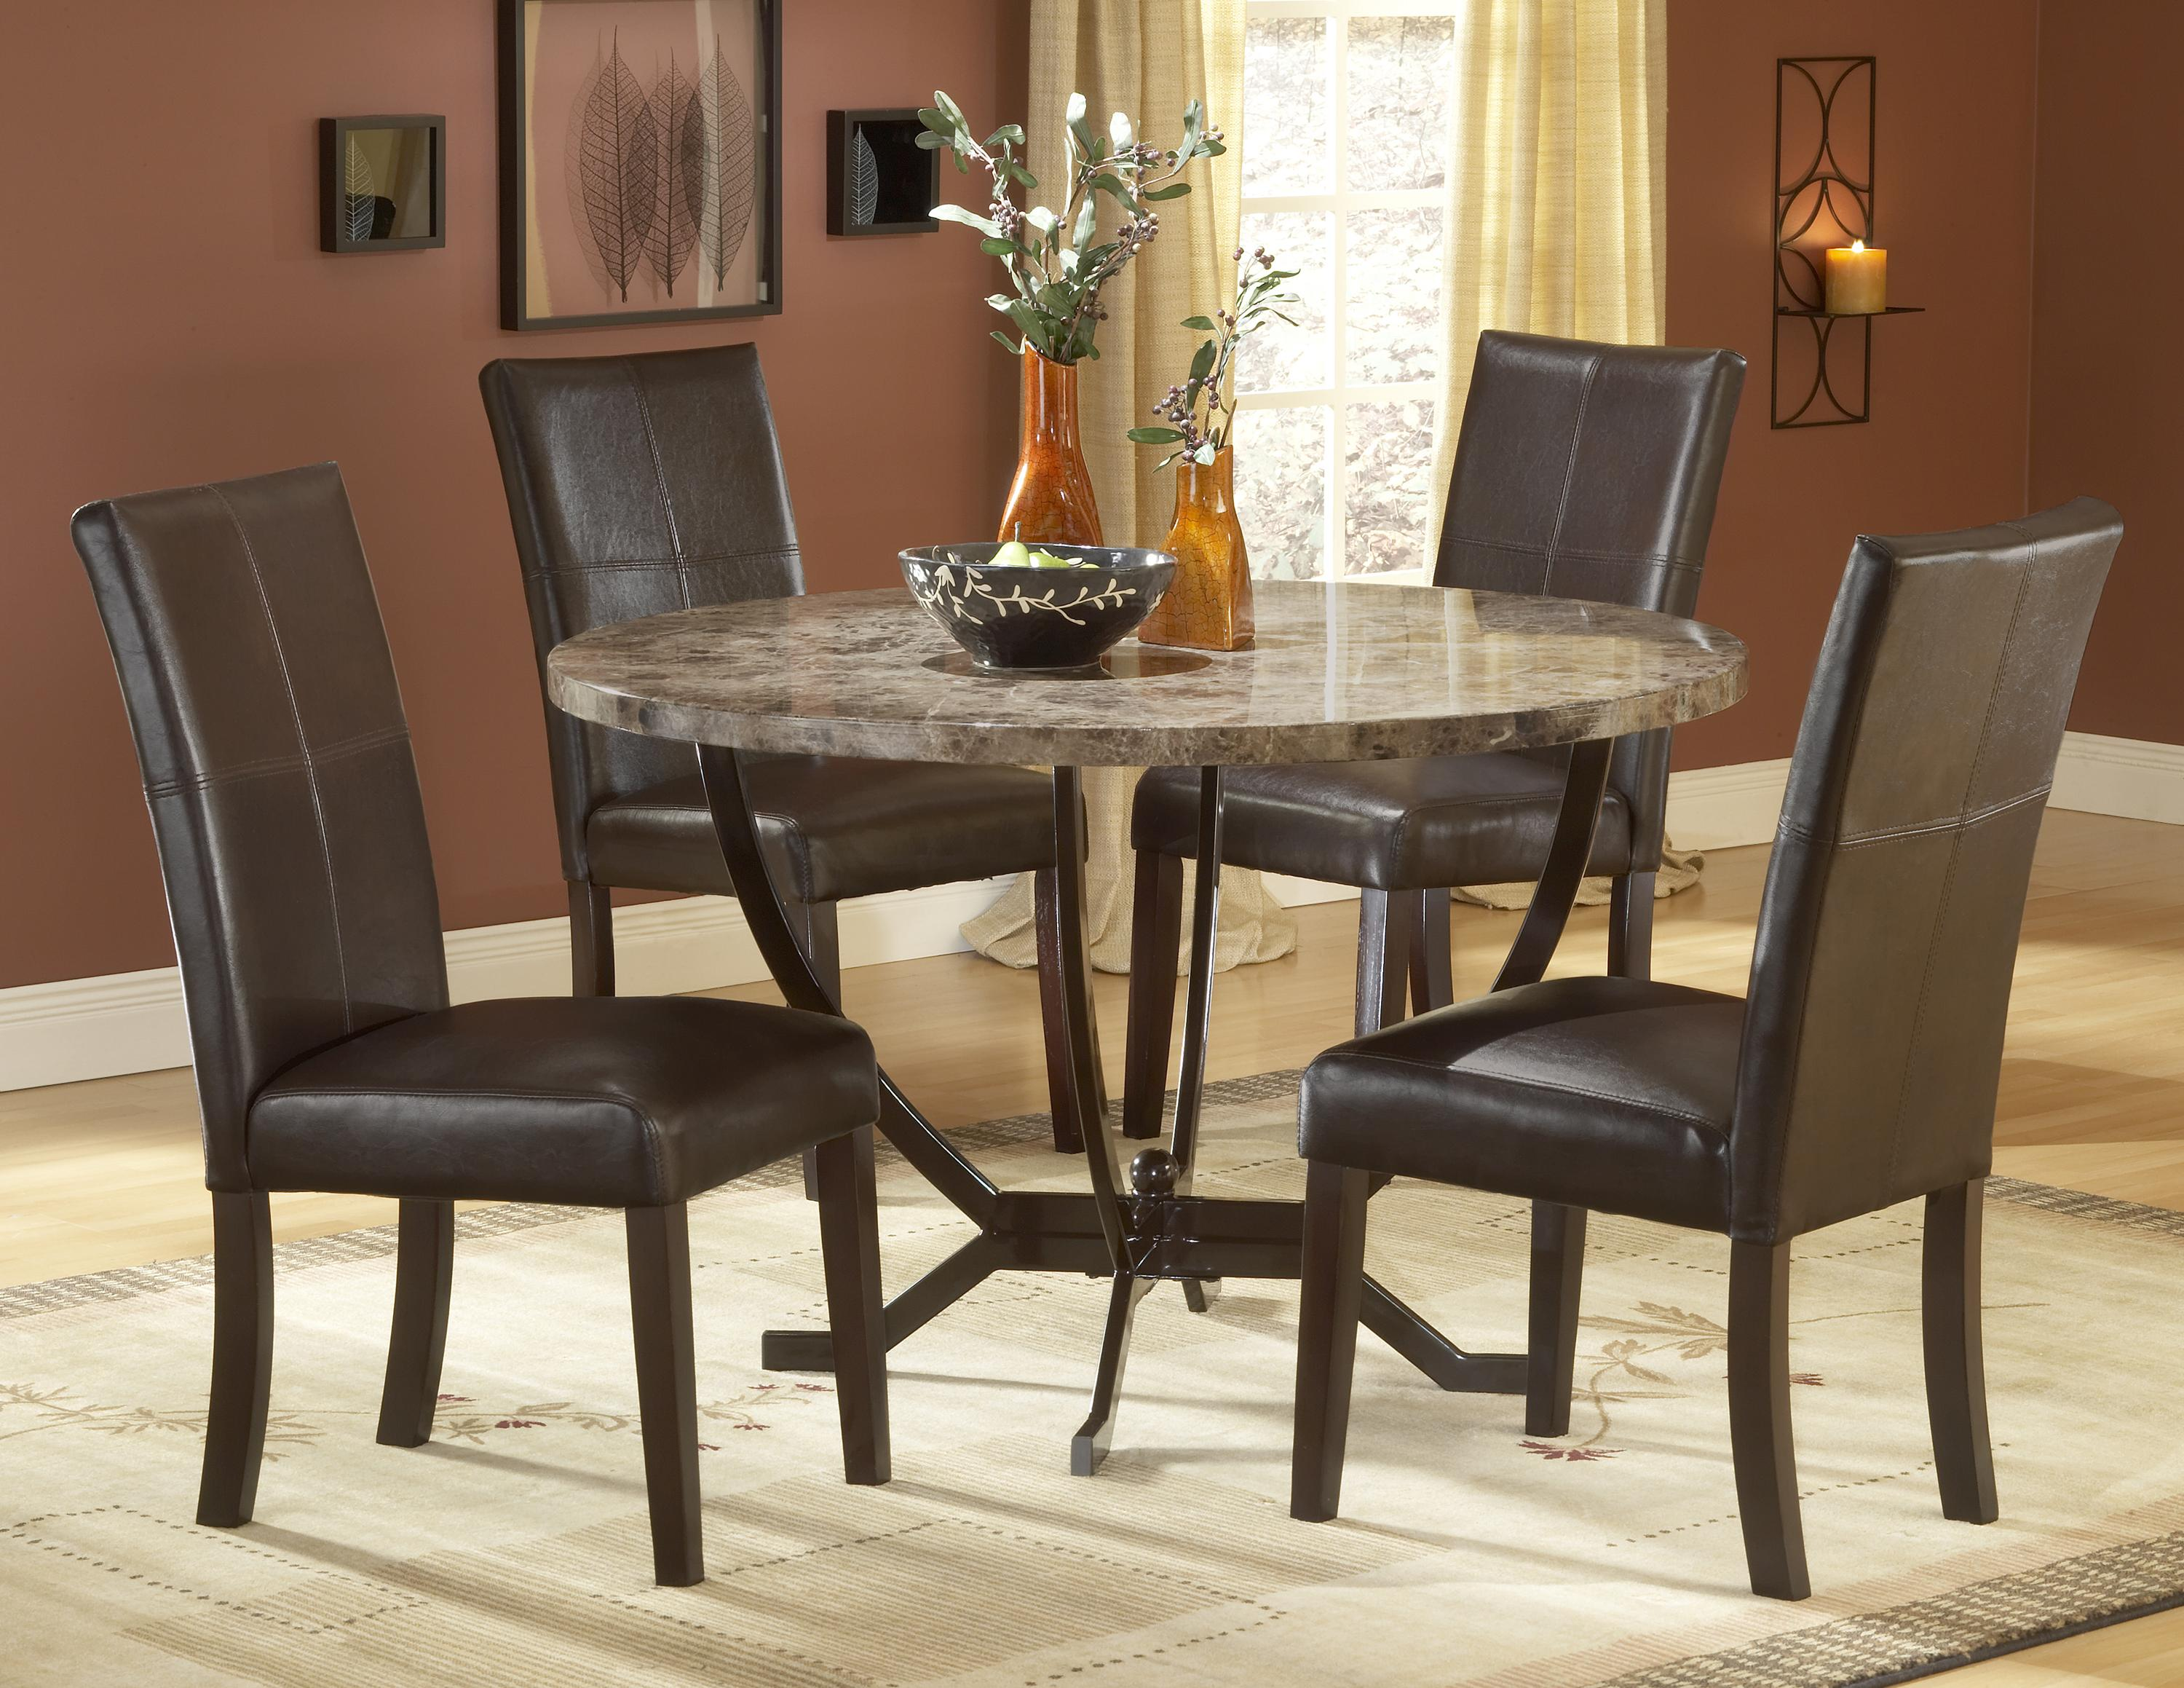 Casual dining room ideas round table - High Top Cocktail Tables Rental Small Dining Table For 4 Pub Table Set